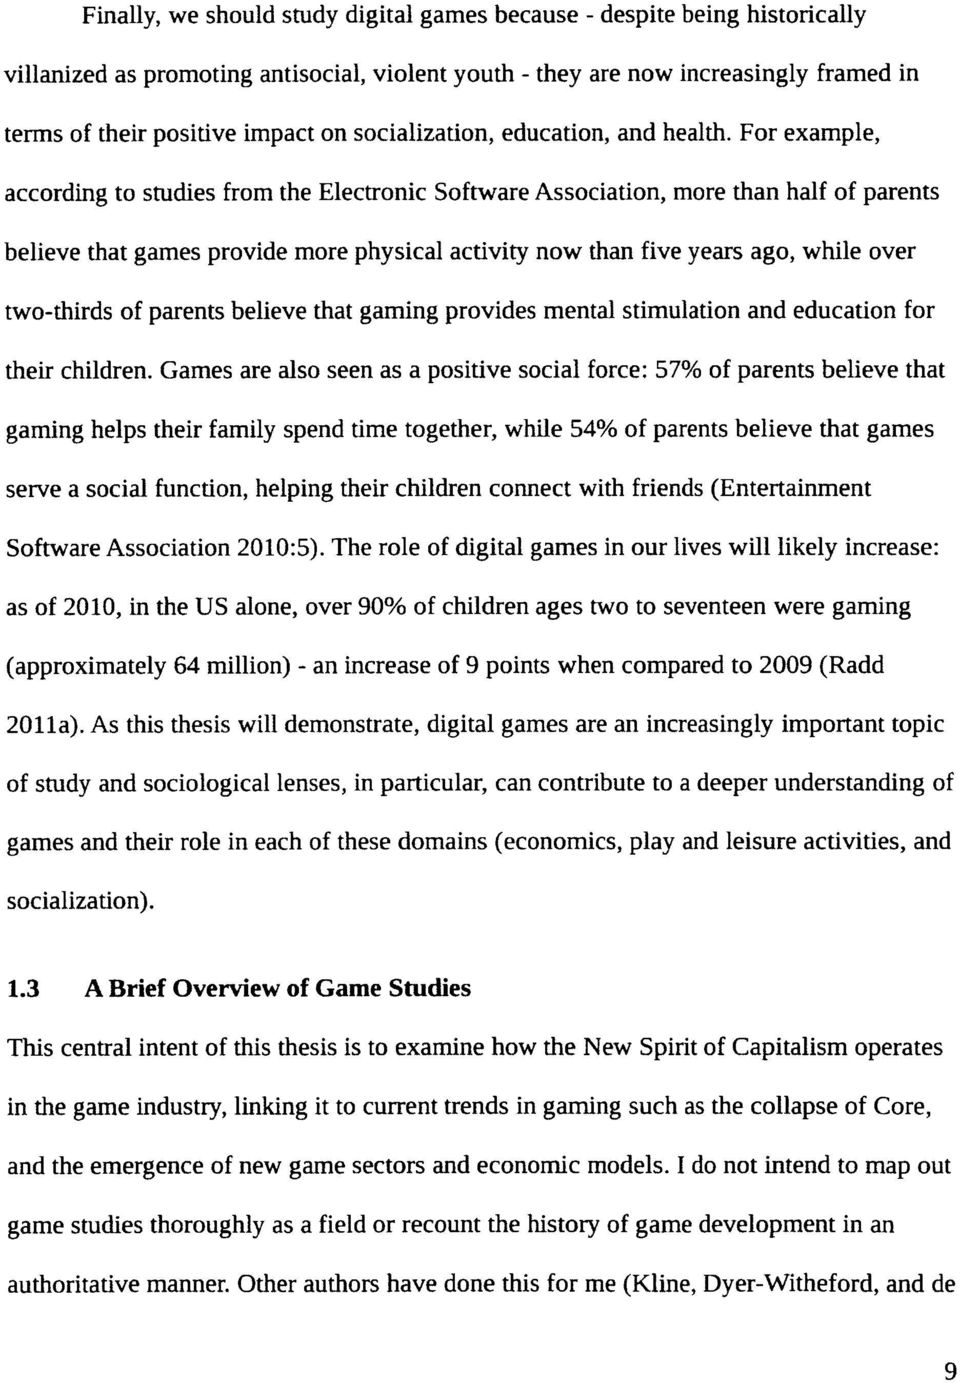 For example, according to studies from the Electronic Software Association, more than half of parents believe that games provide more physical activity now than five years ago, while over two-thirds